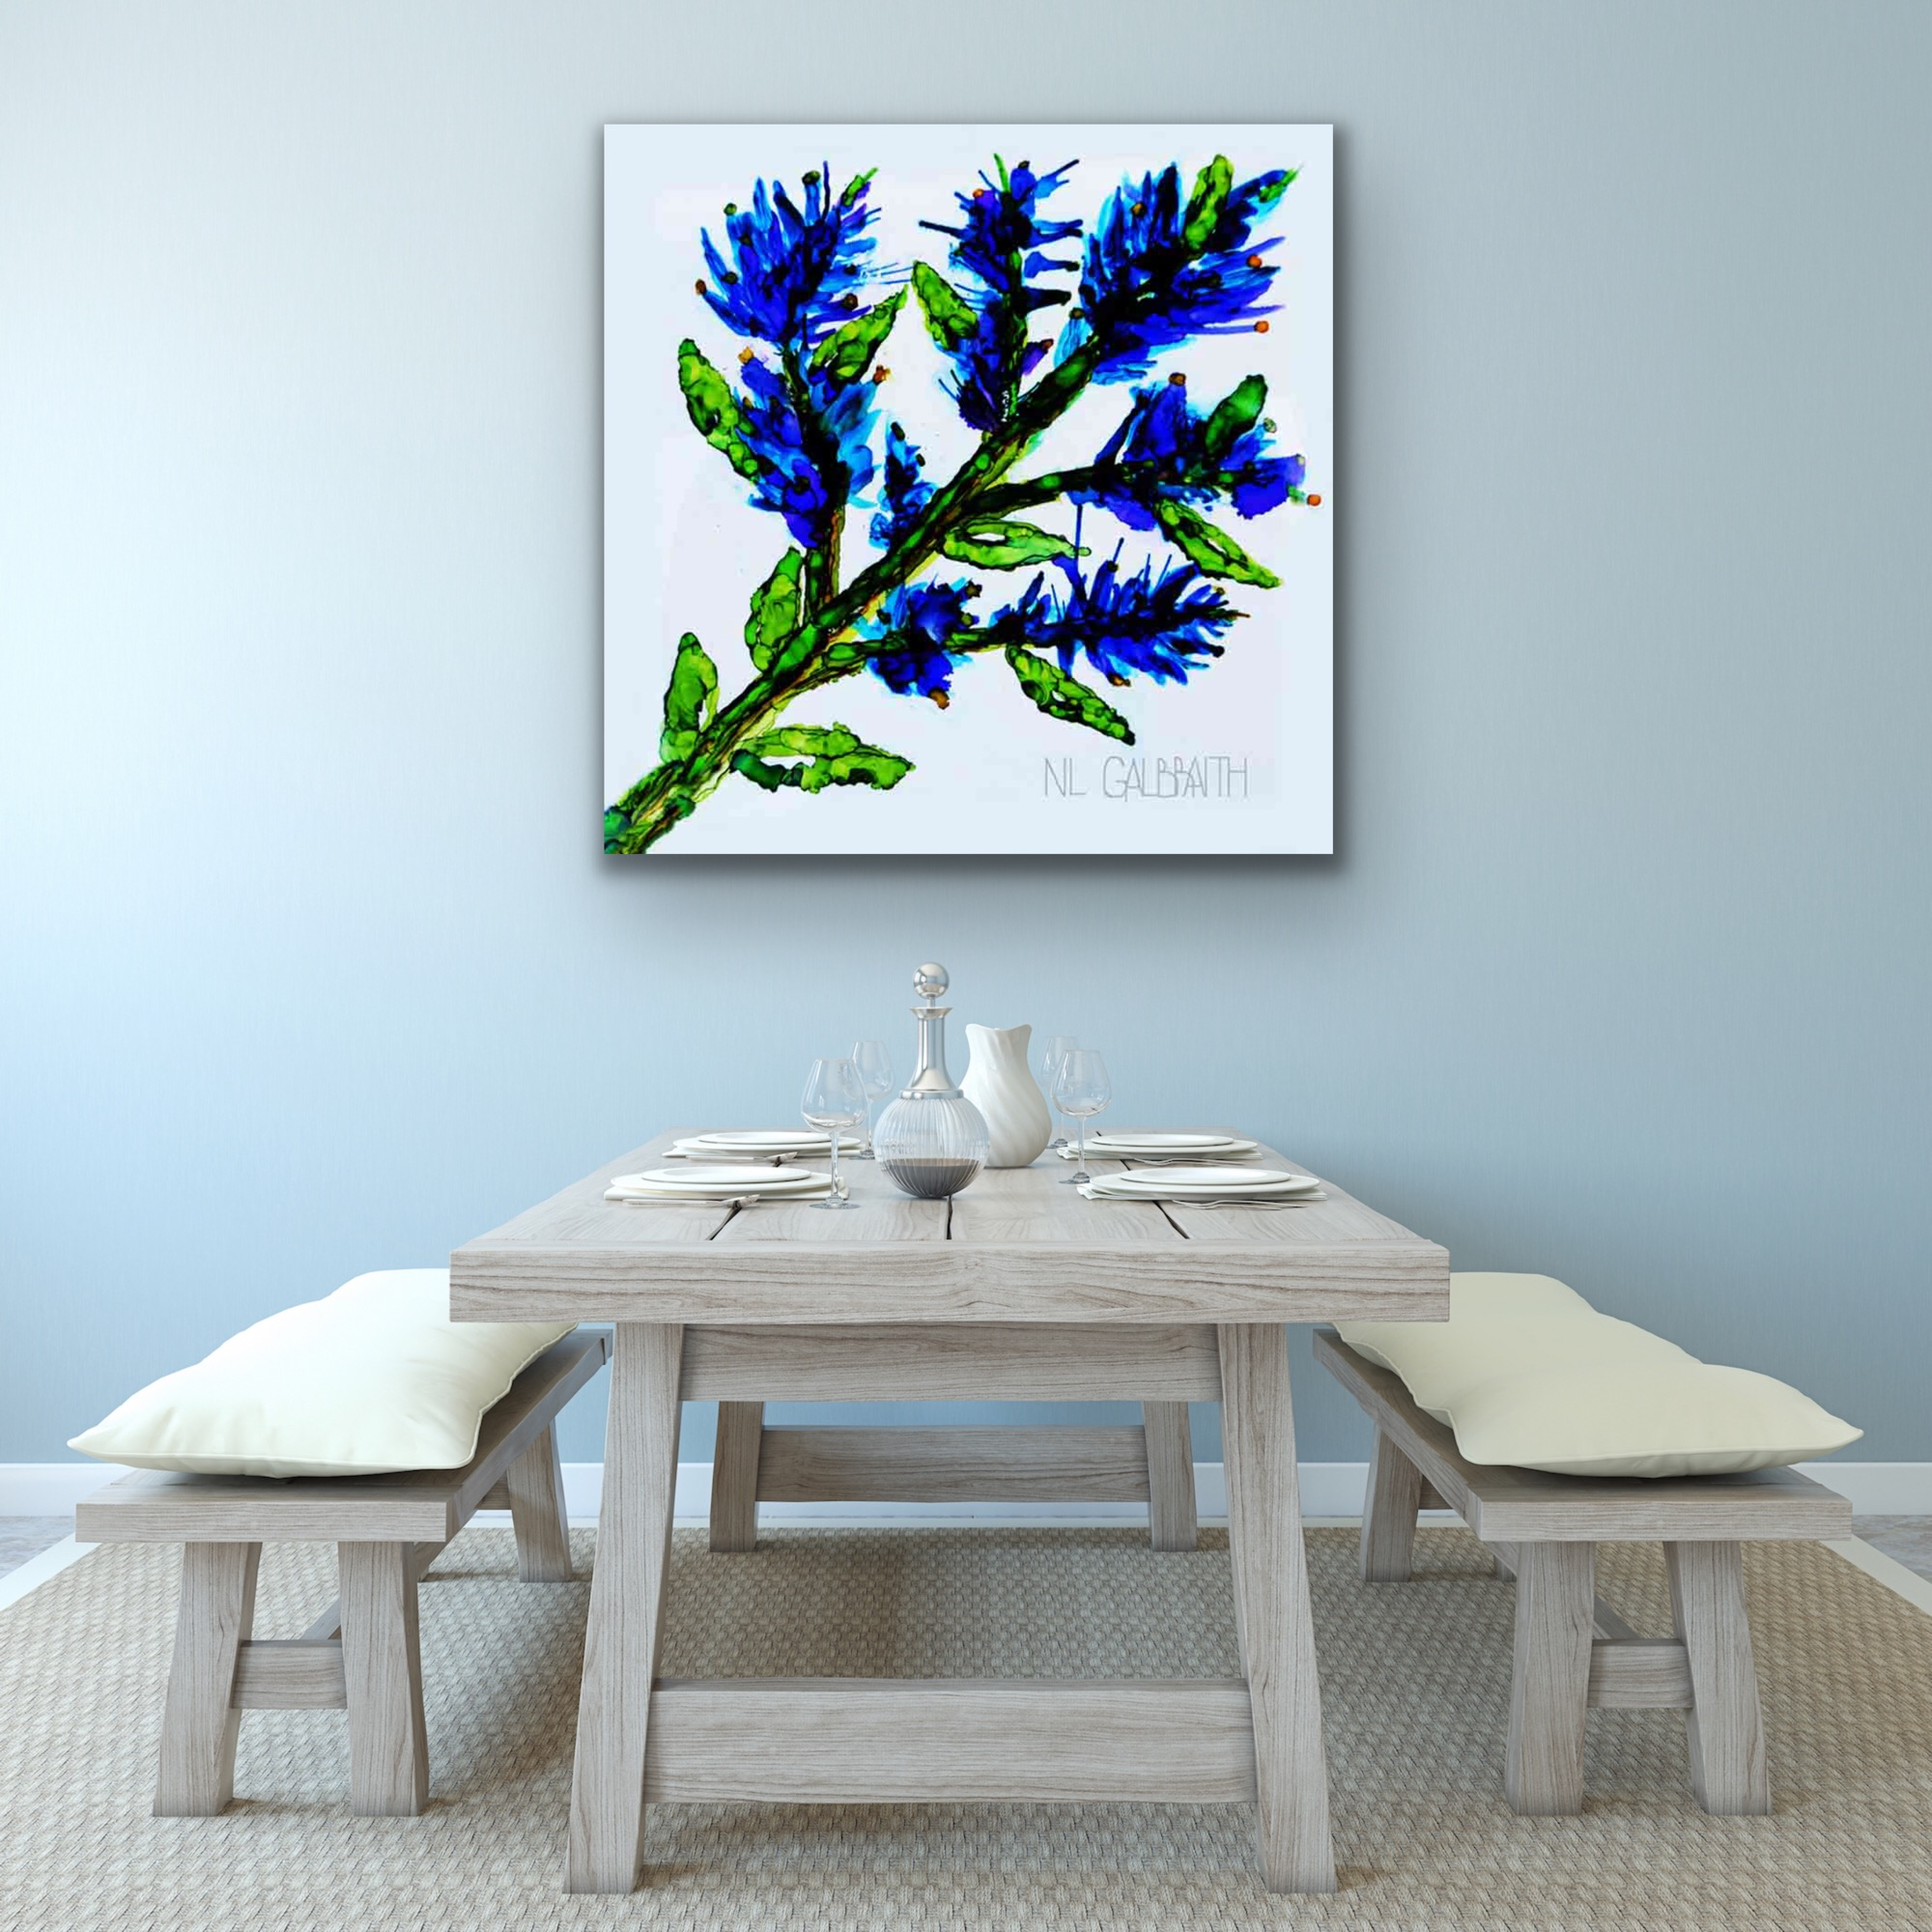 Large Blue Sprig Graphic in a Dining Area